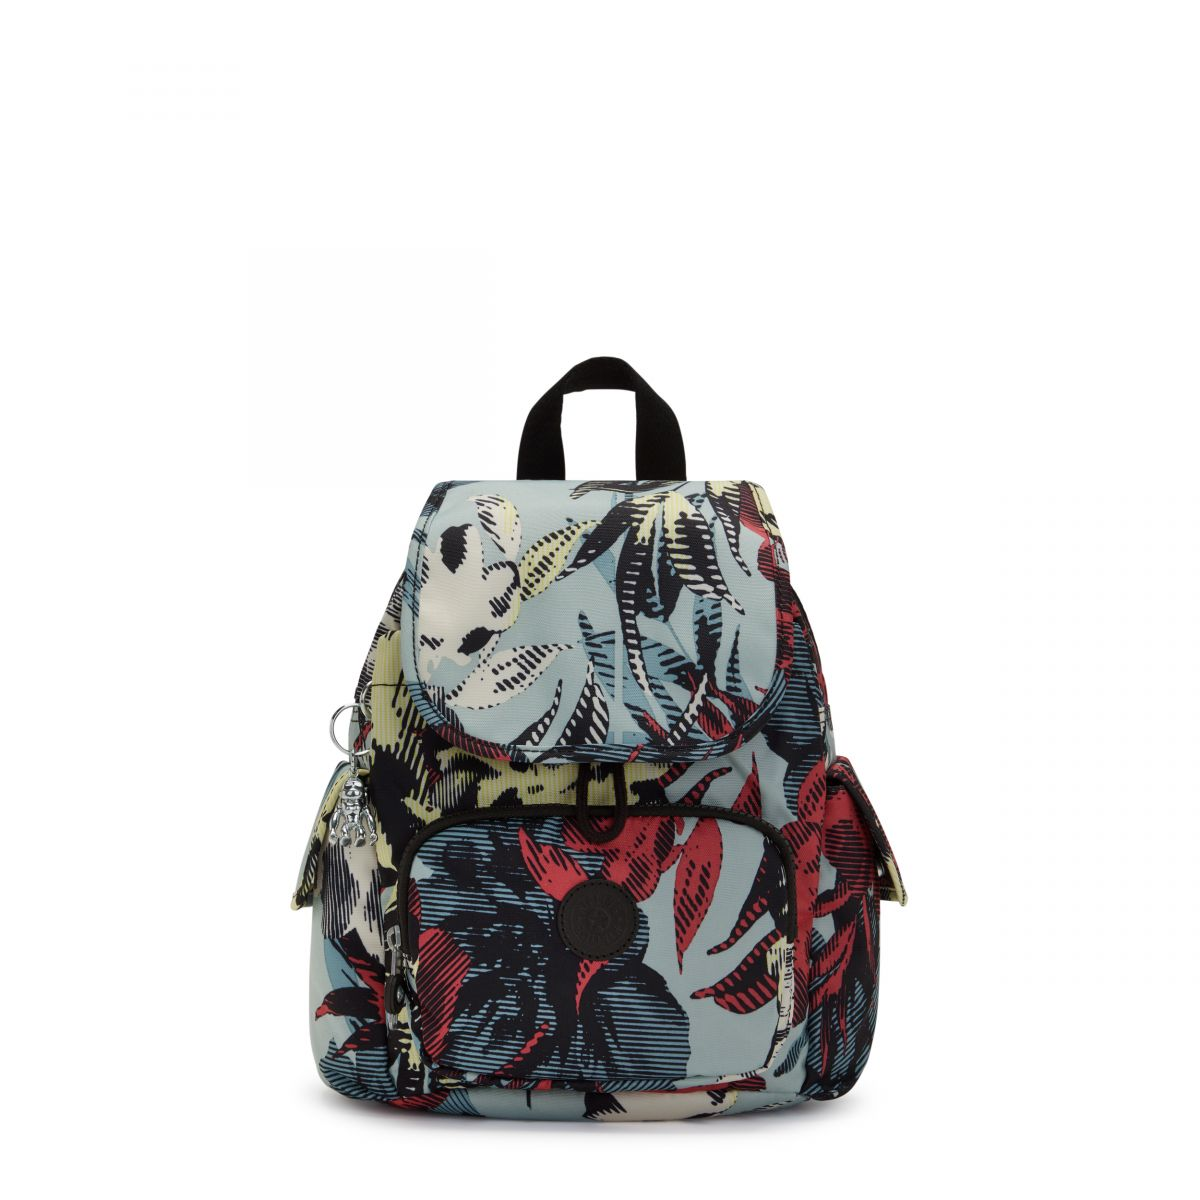 CITY PACK MINI BACKPACKS by Kipling - Front view